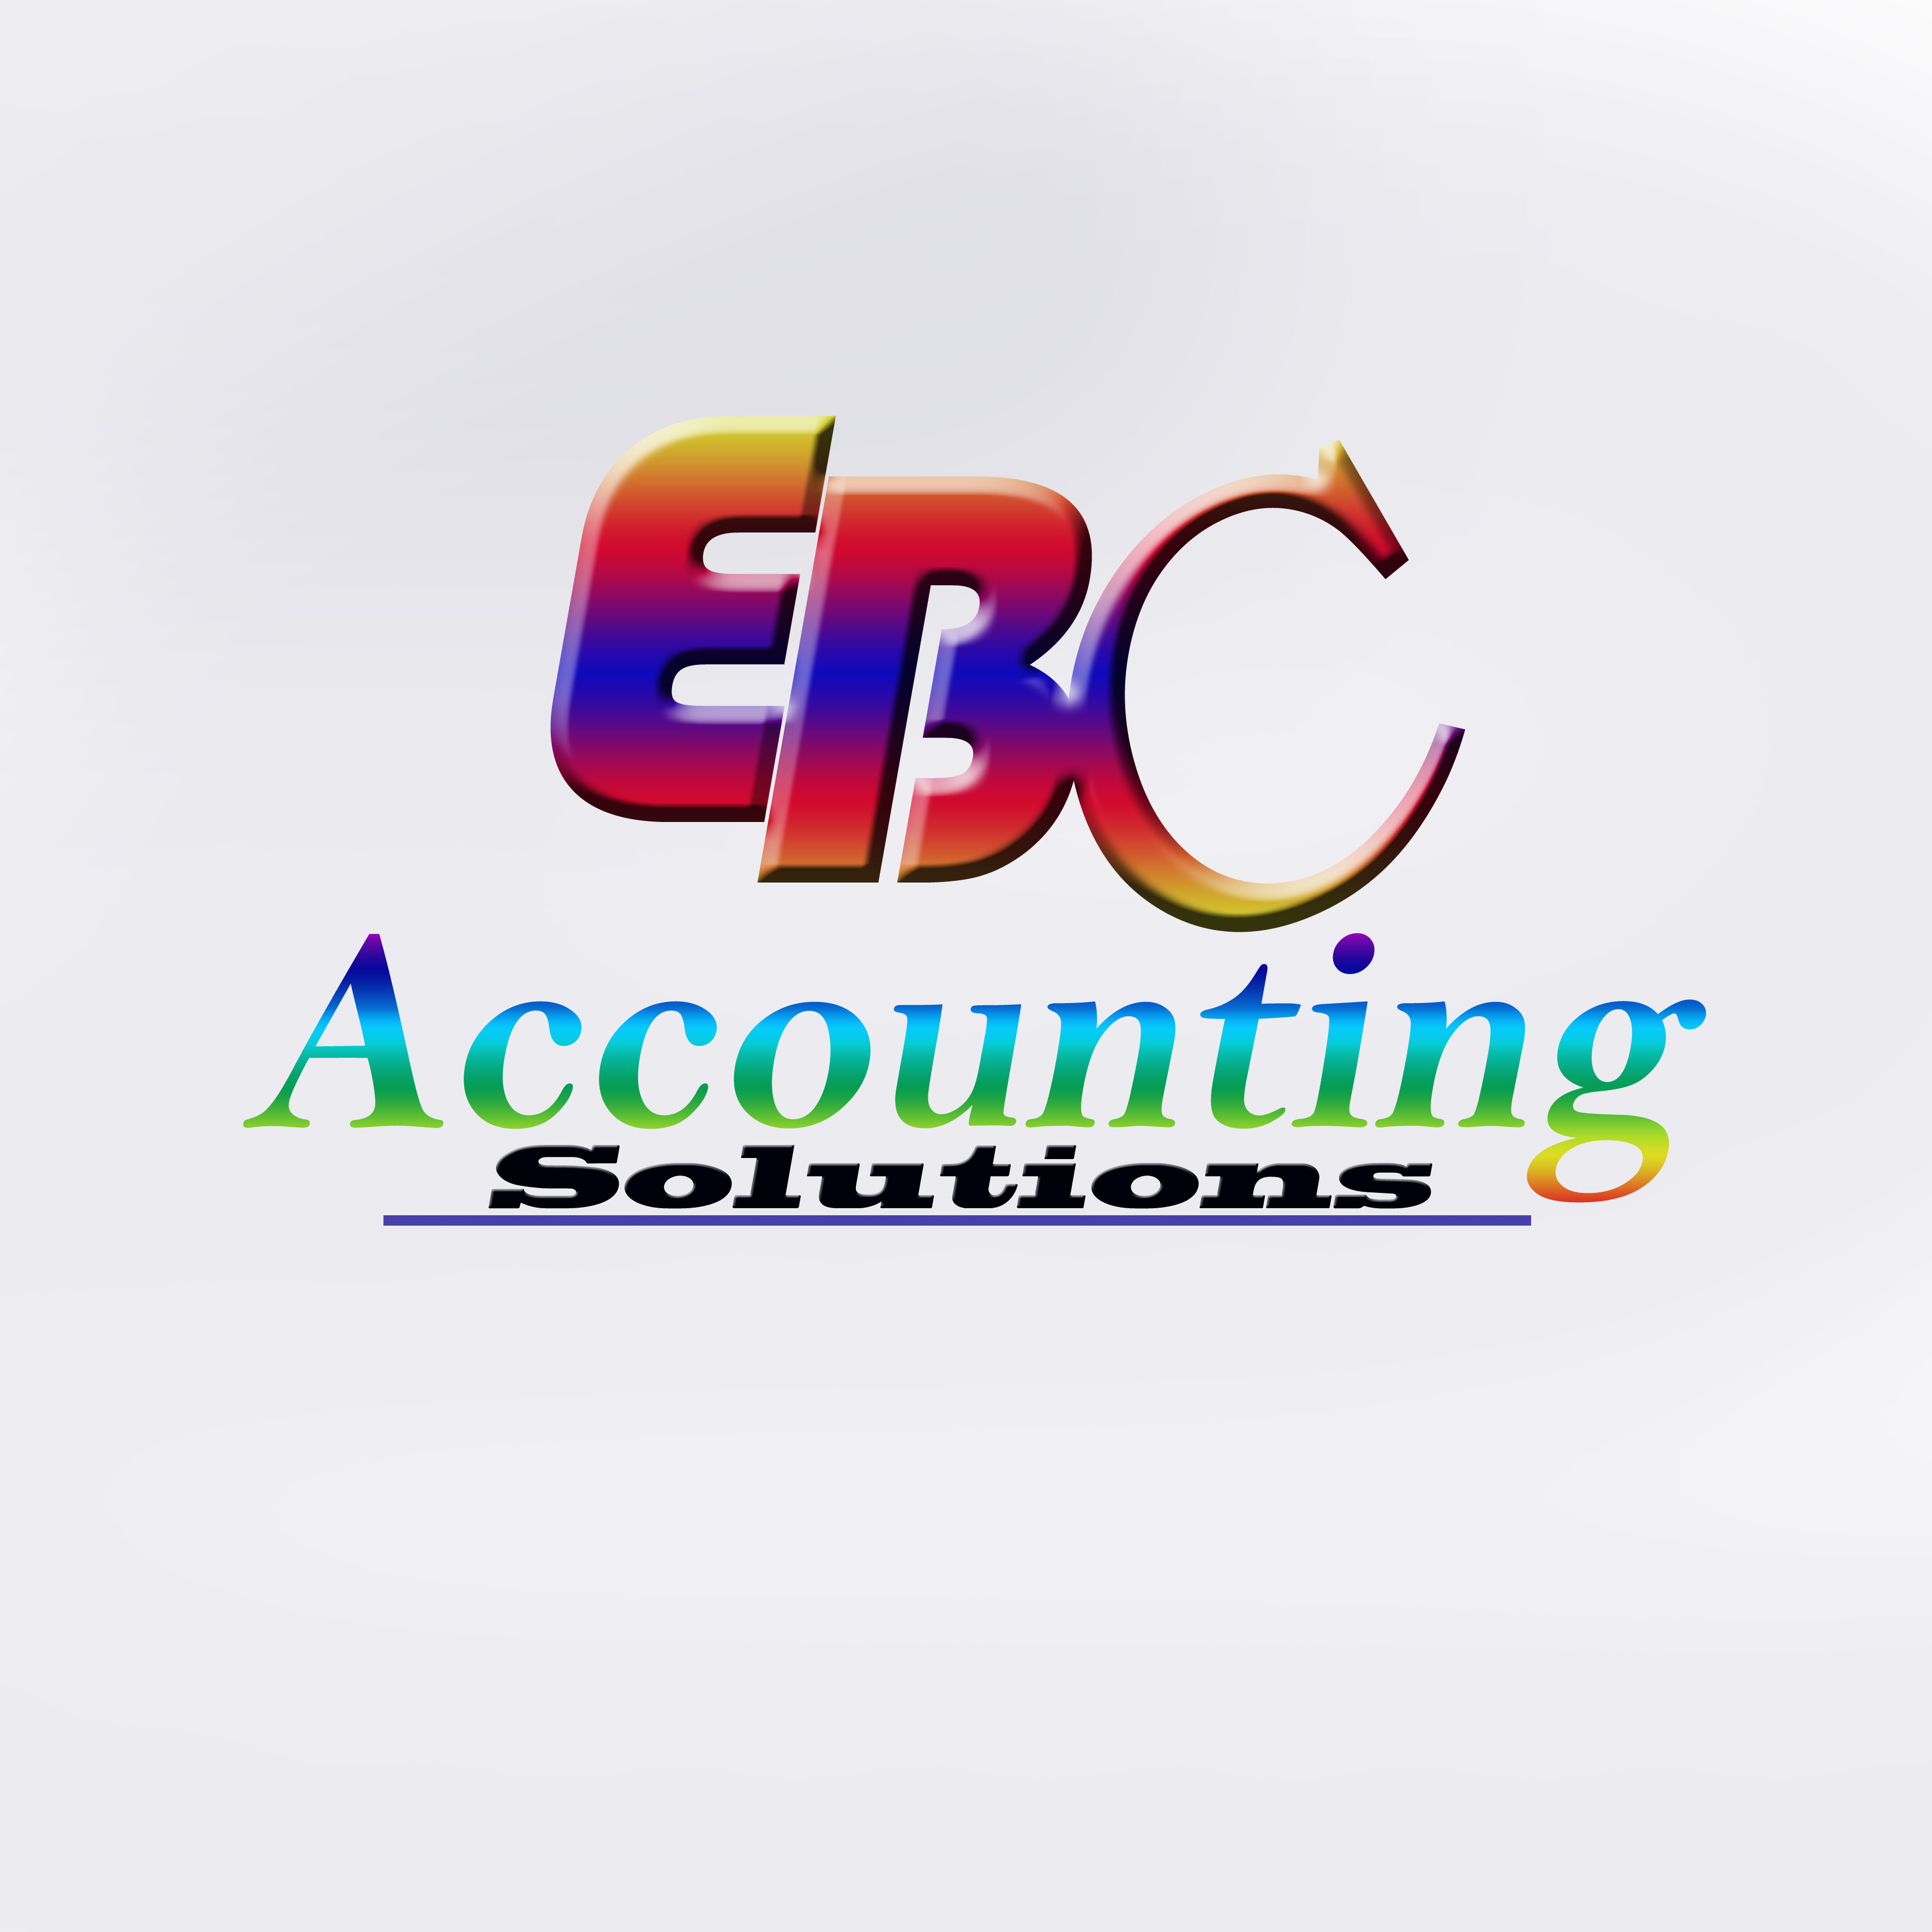 Logo Design by Roberto Sibbaluca - Entry No. 10 in the Logo Design Contest New Logo Design for EBC Accounting Solutions.